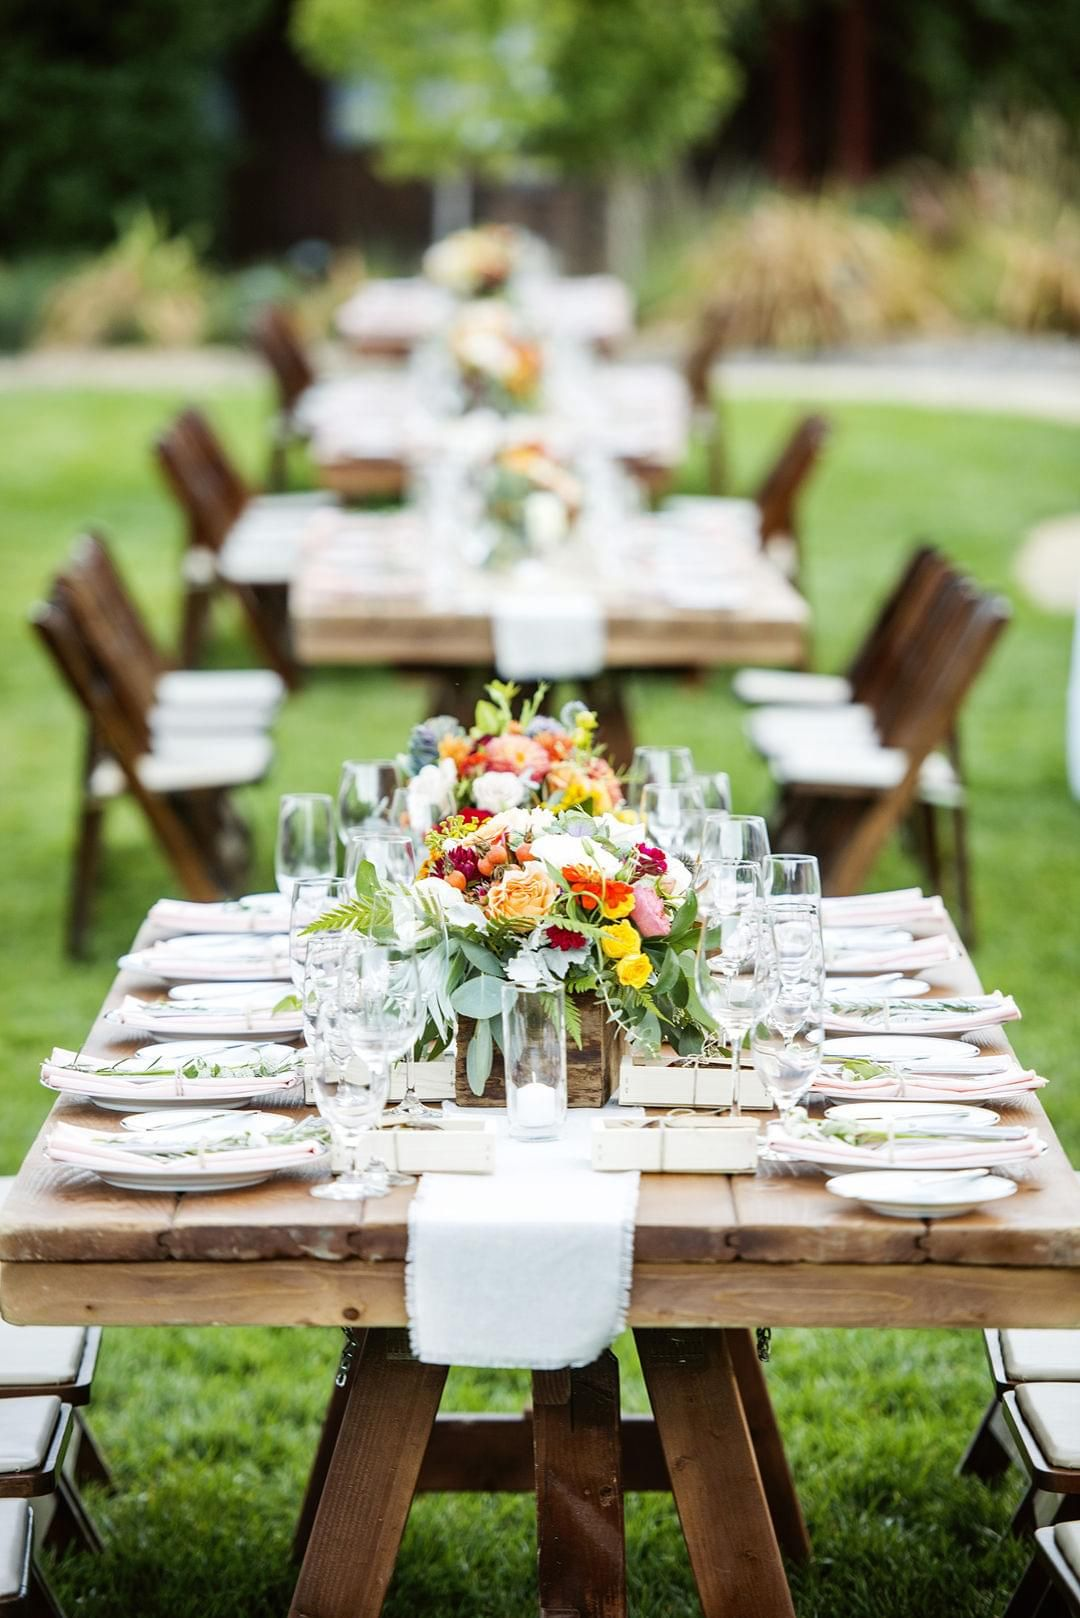 The Smarter Way To Wed Pinterest Picnic Wedding Receptions